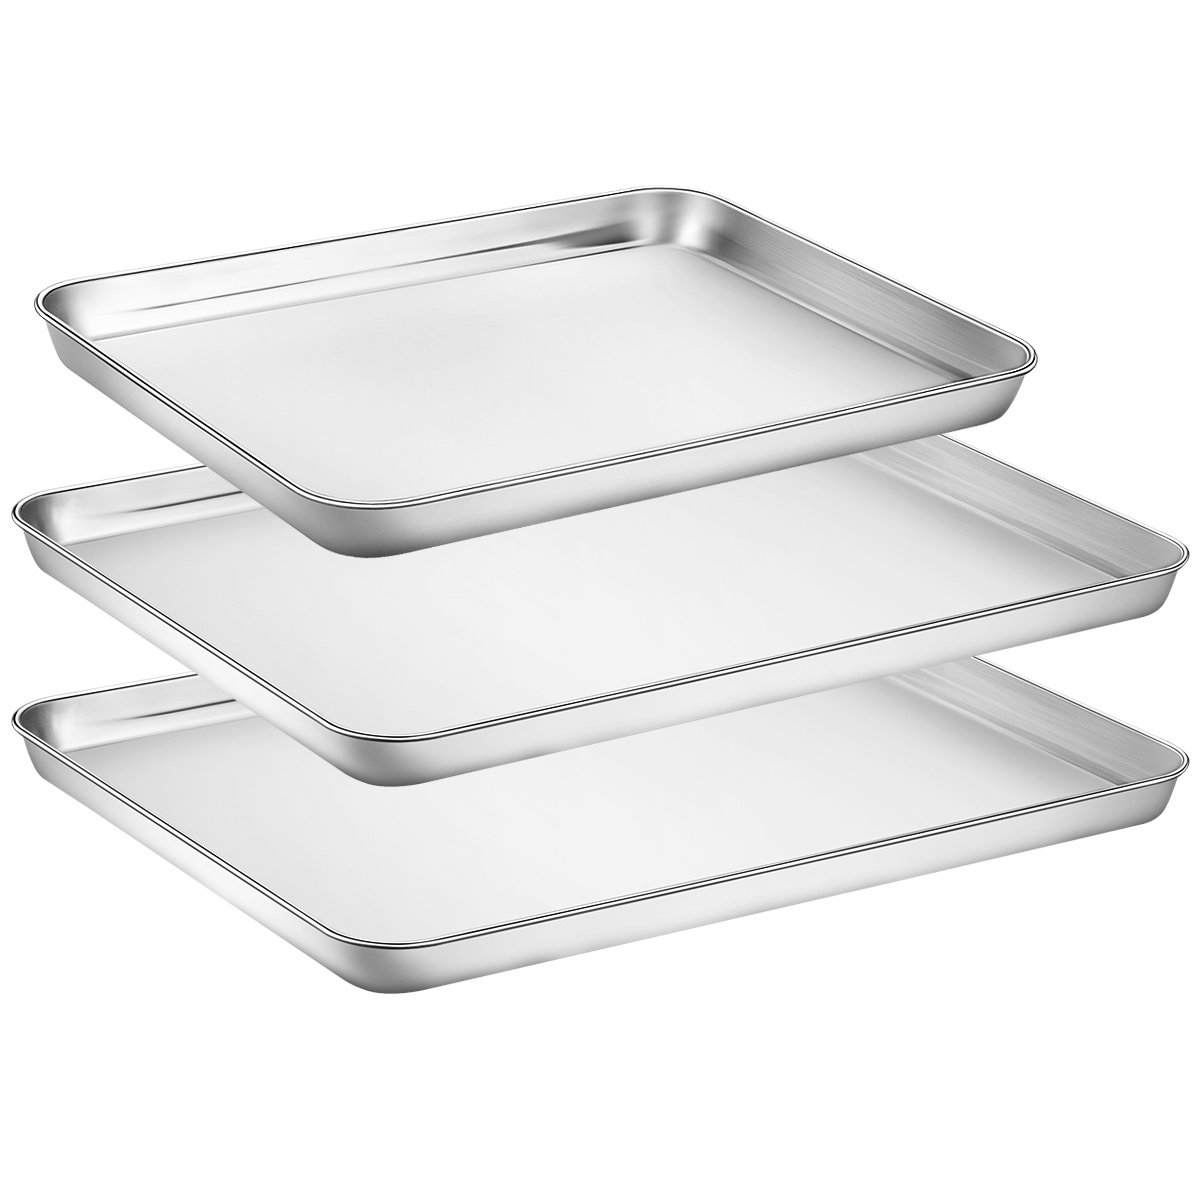 Baking Sheets Set of 3, HKJ Chef Baking Pans 3 Pieces & Stainless Steel Cookie Sheets & Toaster Oven Tray Pans, & Non Toxic & Healthy, Mirror & Easy Clean & Dishwasher Safe